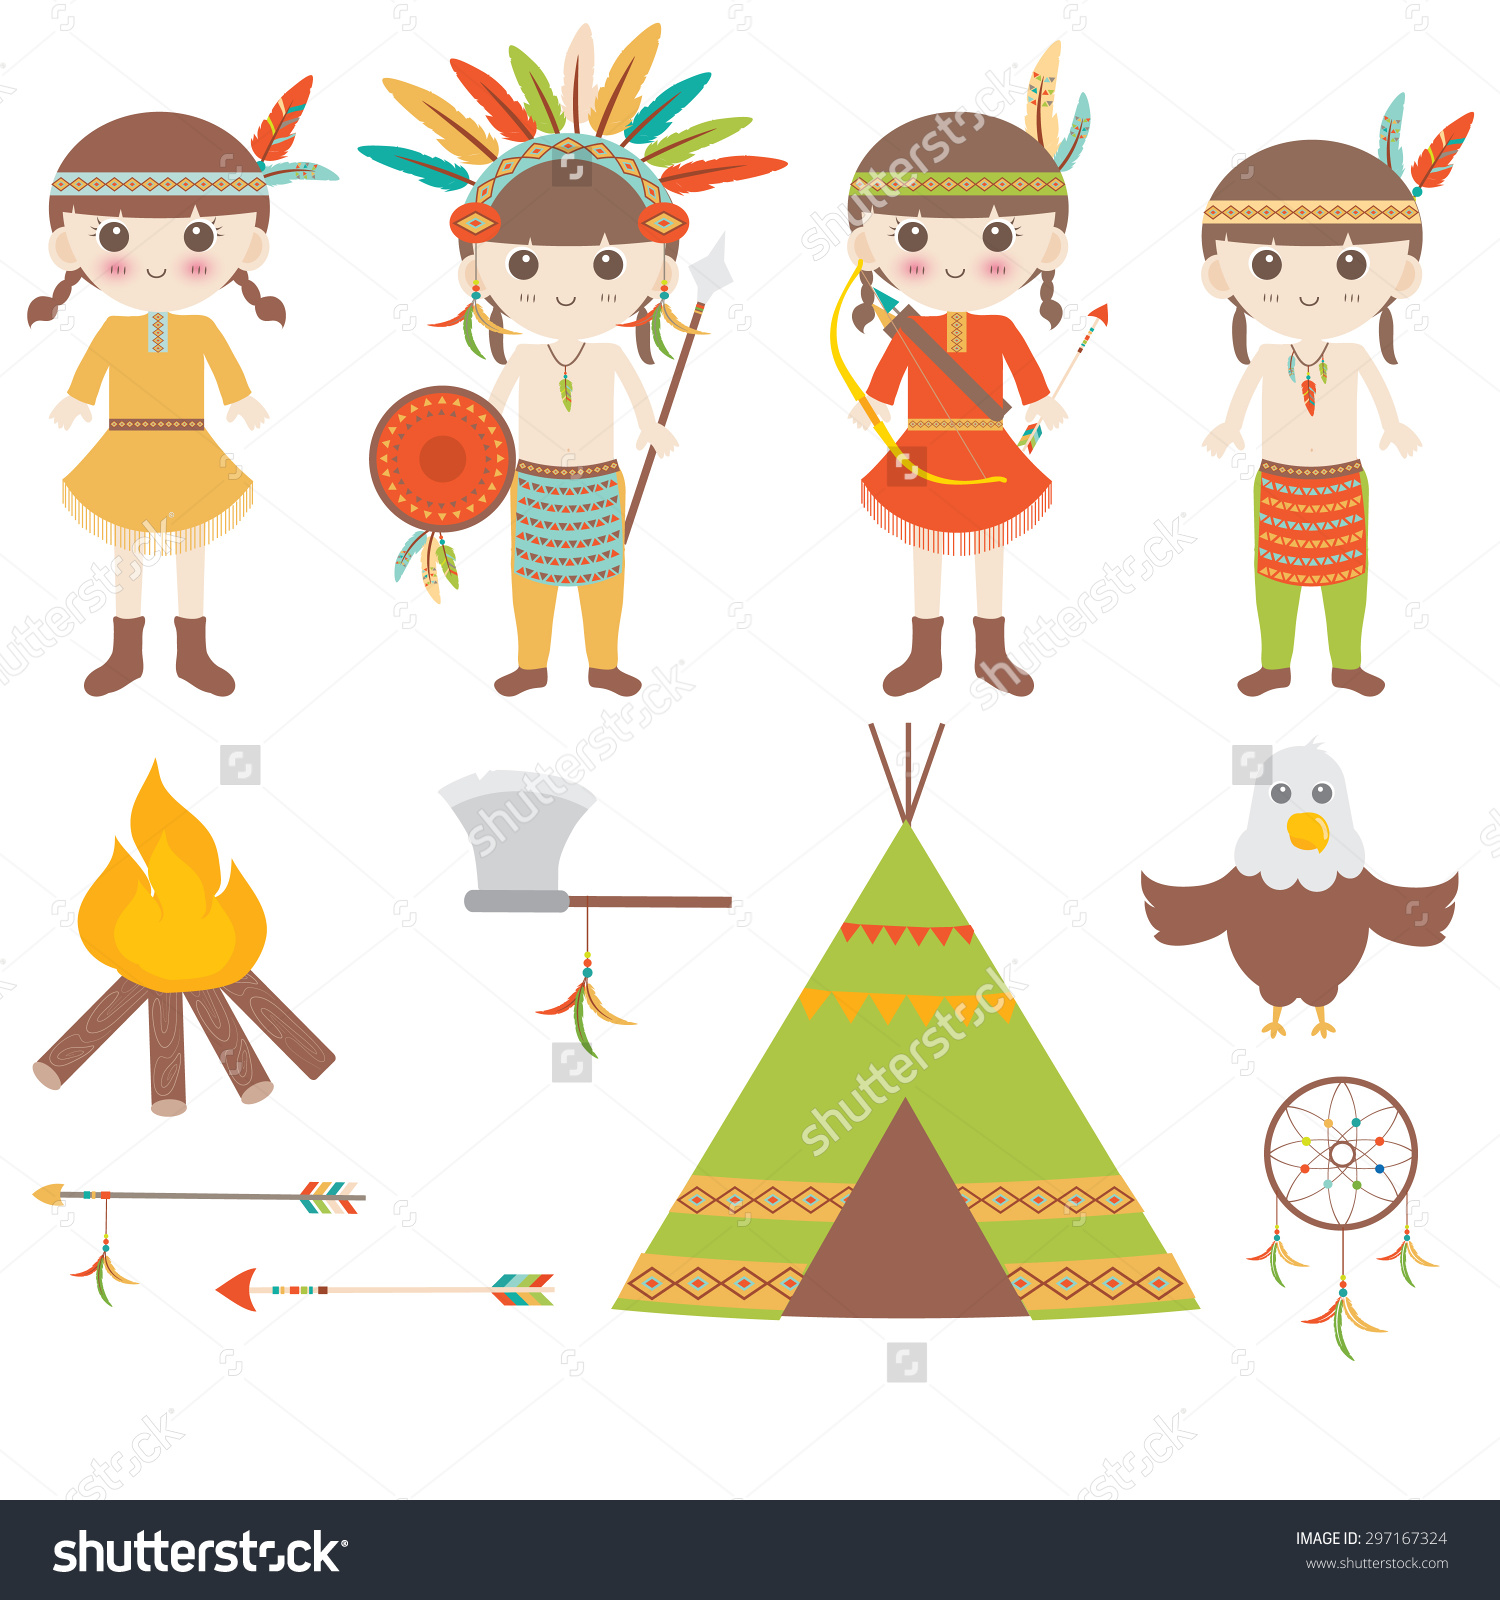 American Indian Clipart Icons Design Stock Vector 297167324.